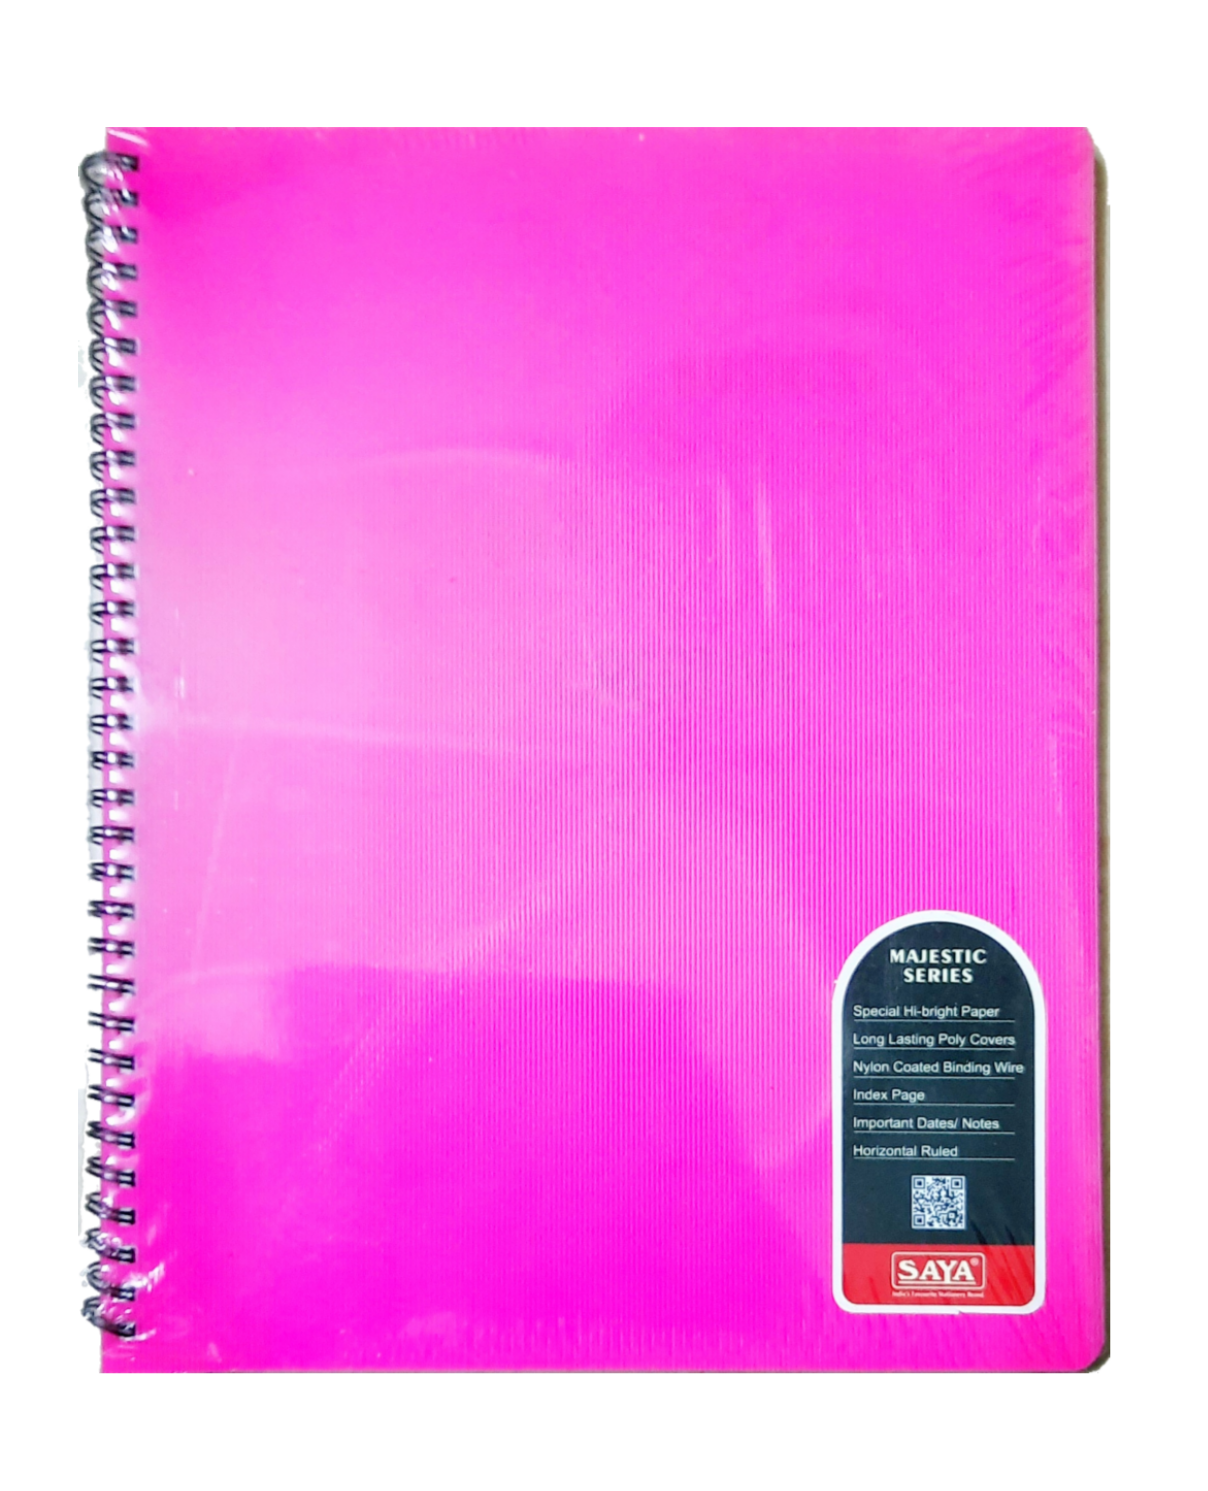 Saya Spiral Notebook, Majestic Series, Single Line, 160 Pages, 27.9 X 21.6 cm, Pack of 1